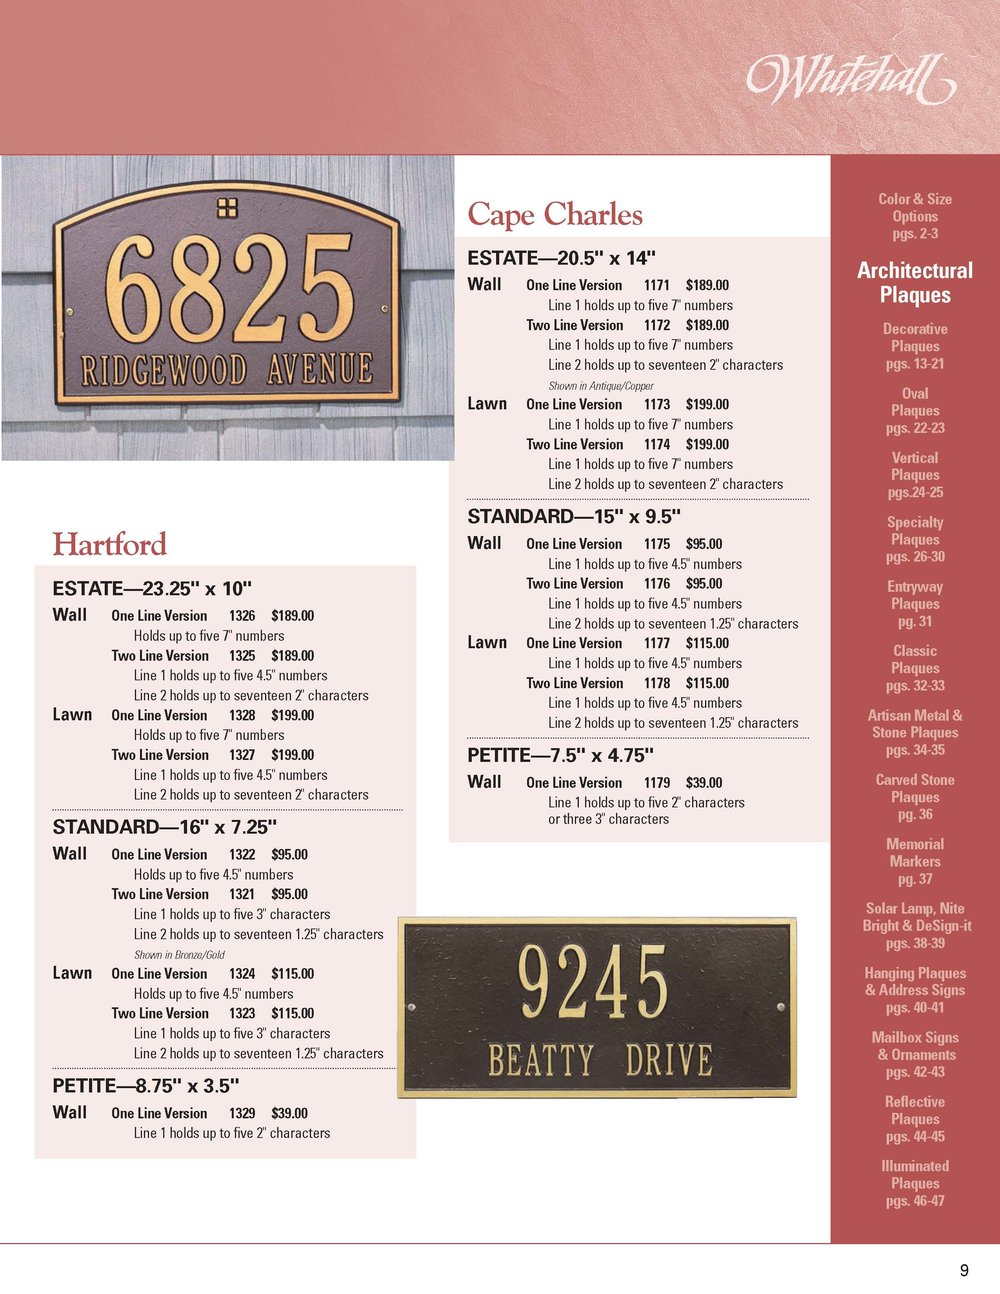 whitehall_catalog_pers_Page_09.jpg